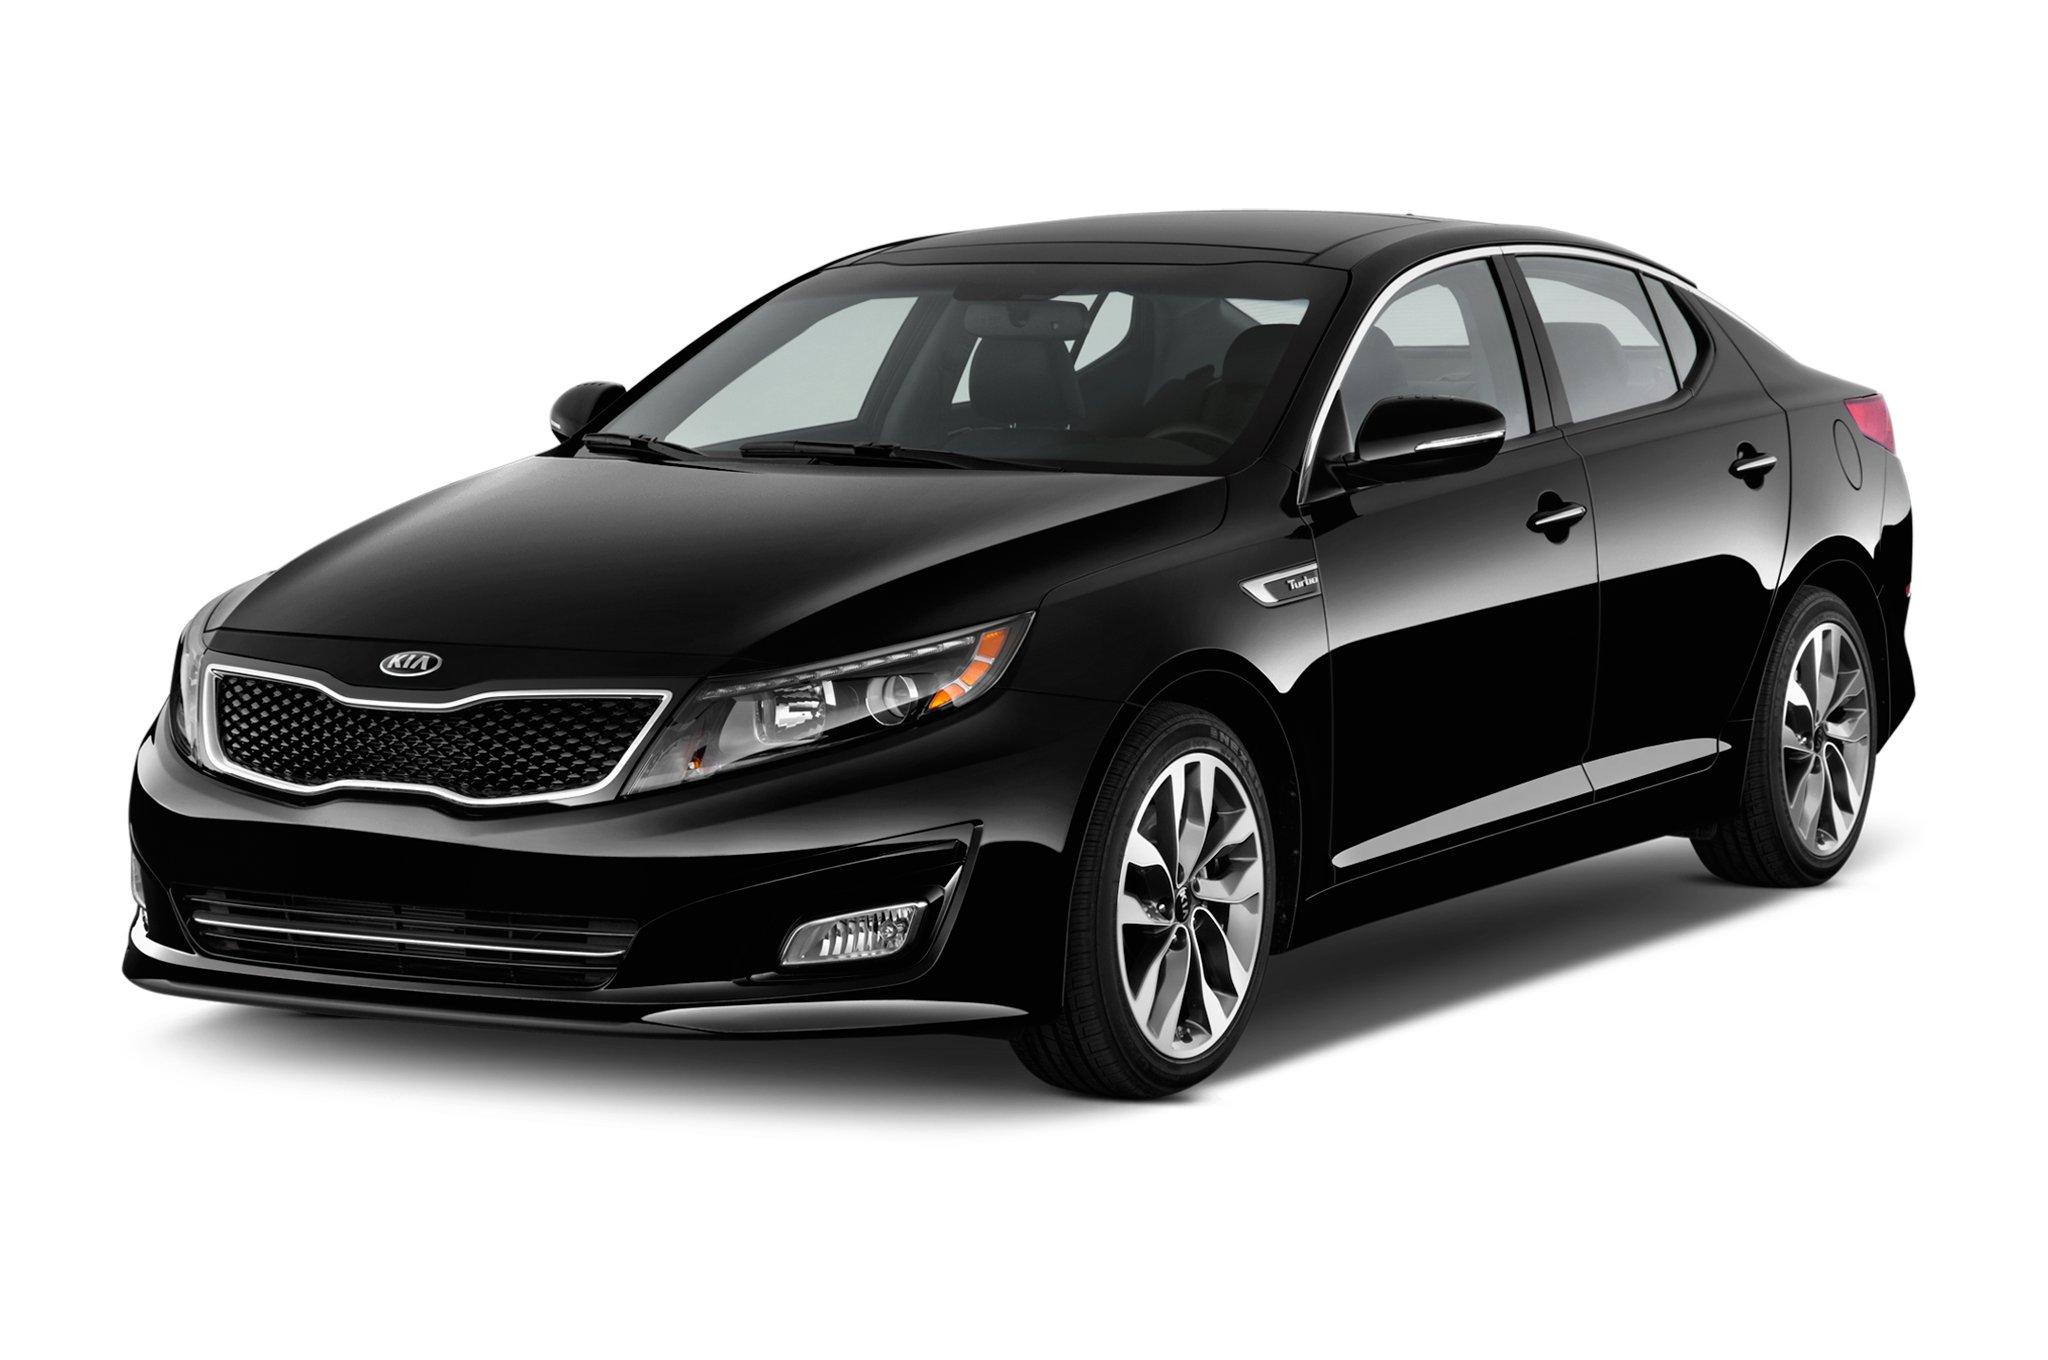 2015-kia-optima-sx-sedan-angular-front